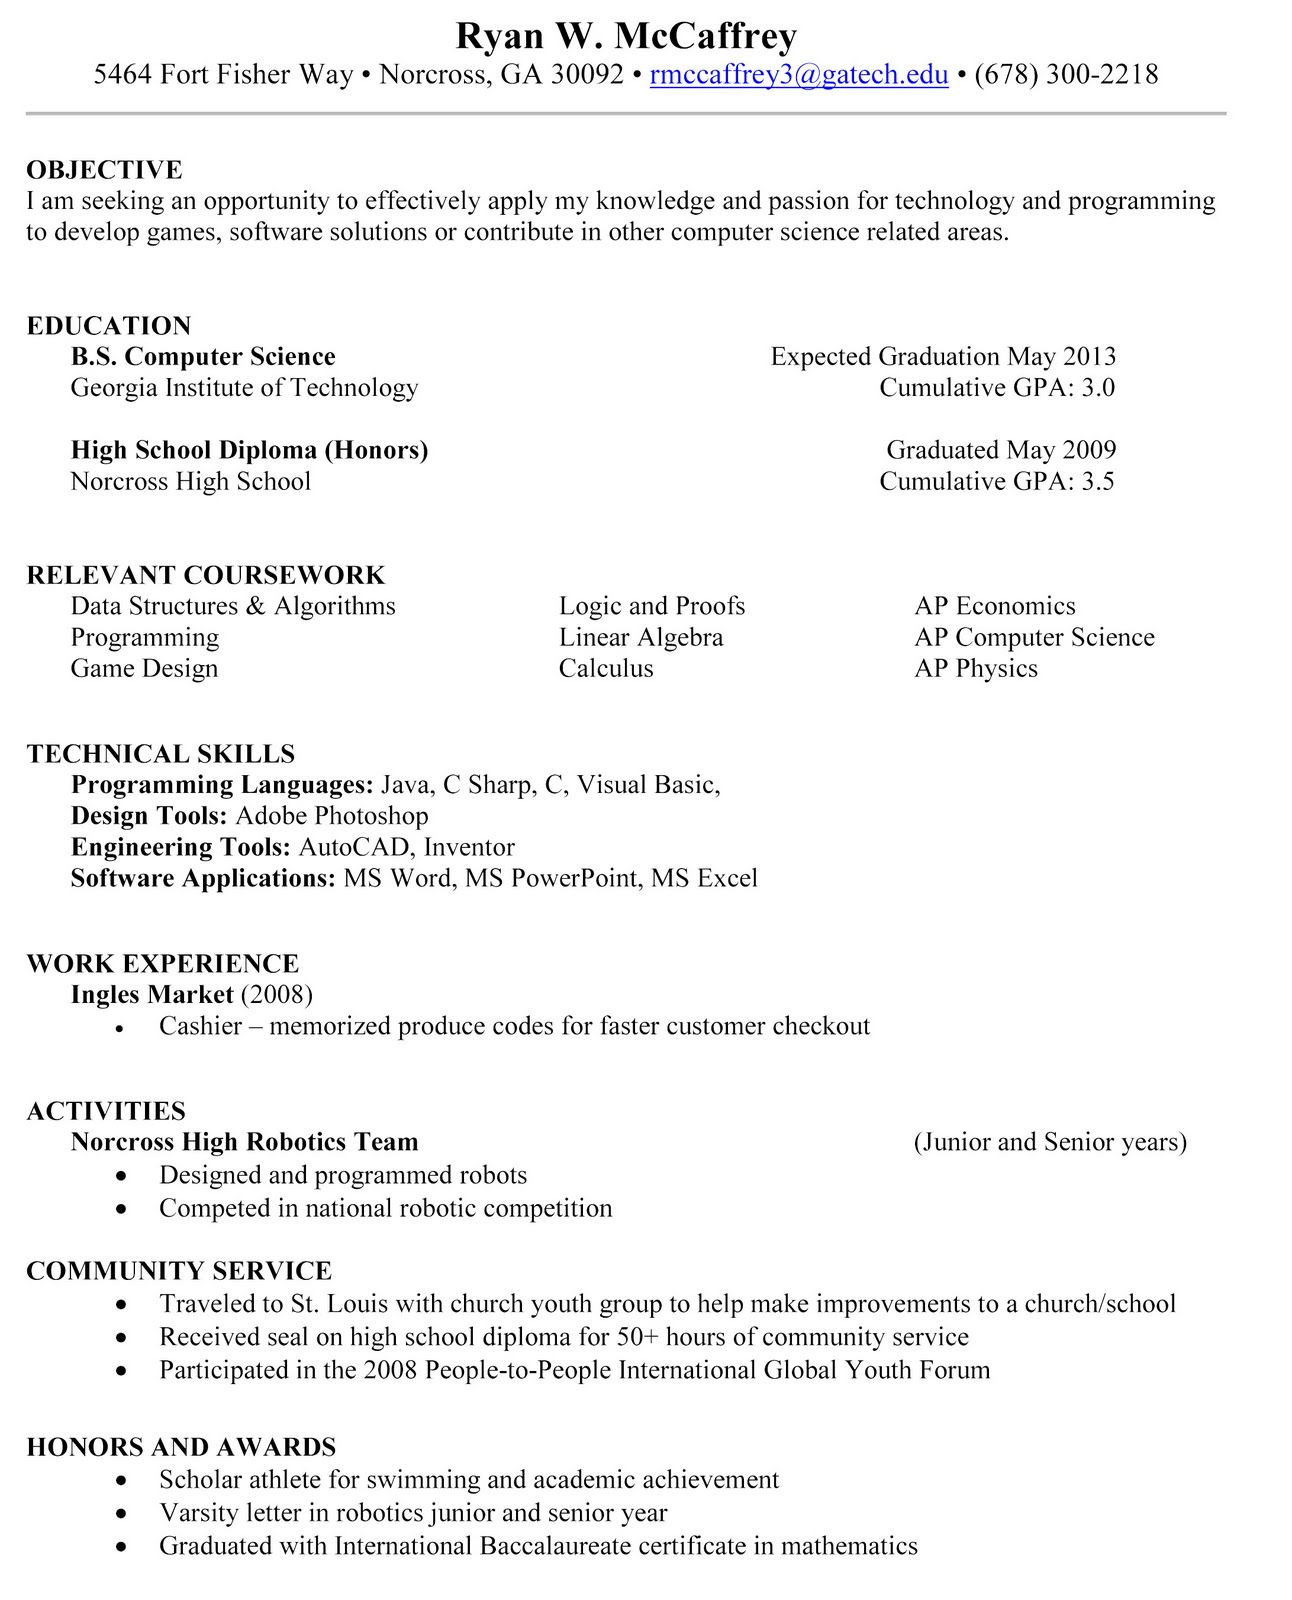 Make a professional resume